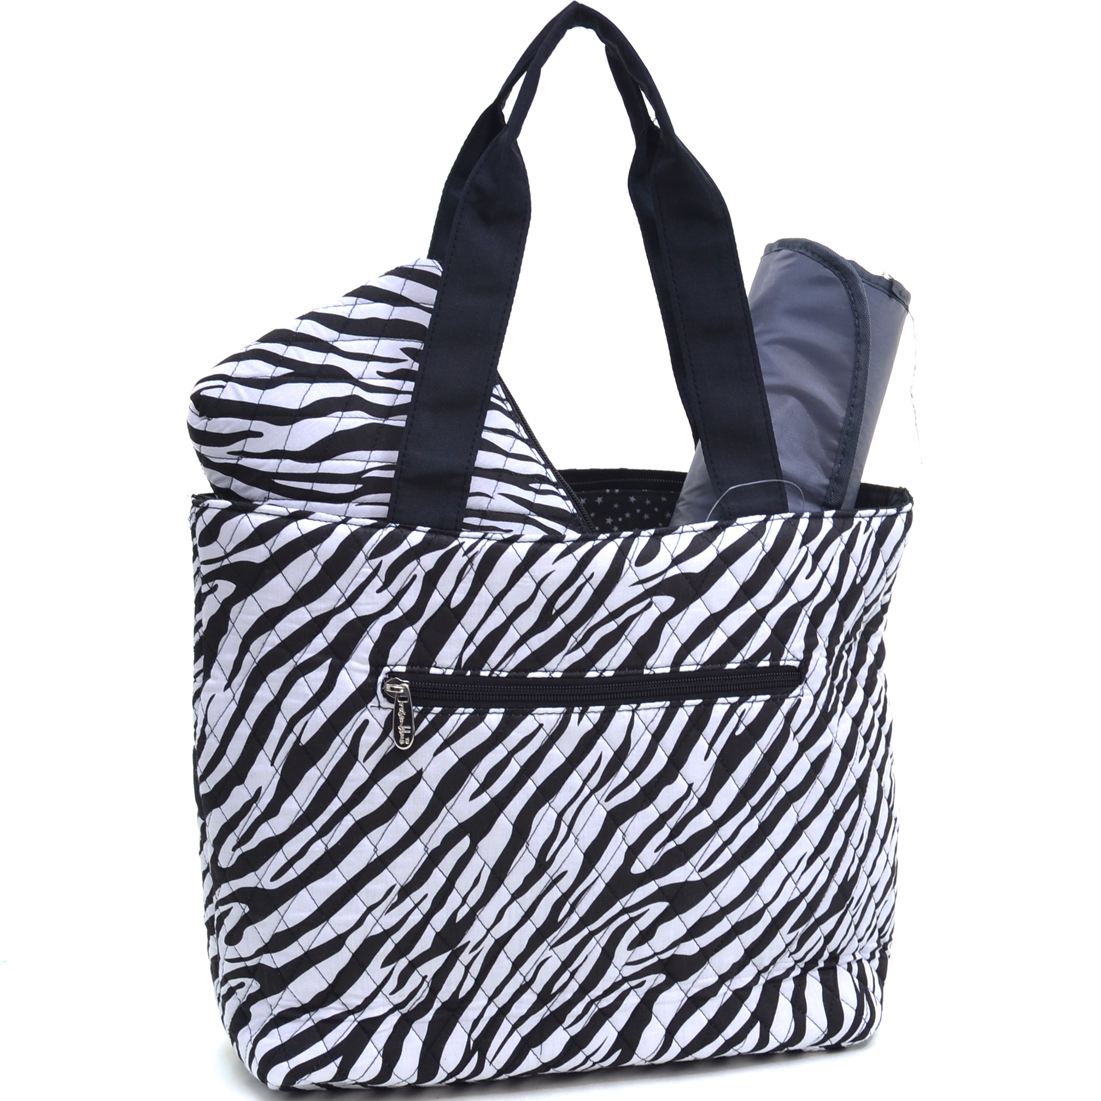 Rosen Blue® Wild Kids 3Piece Diaper Tote